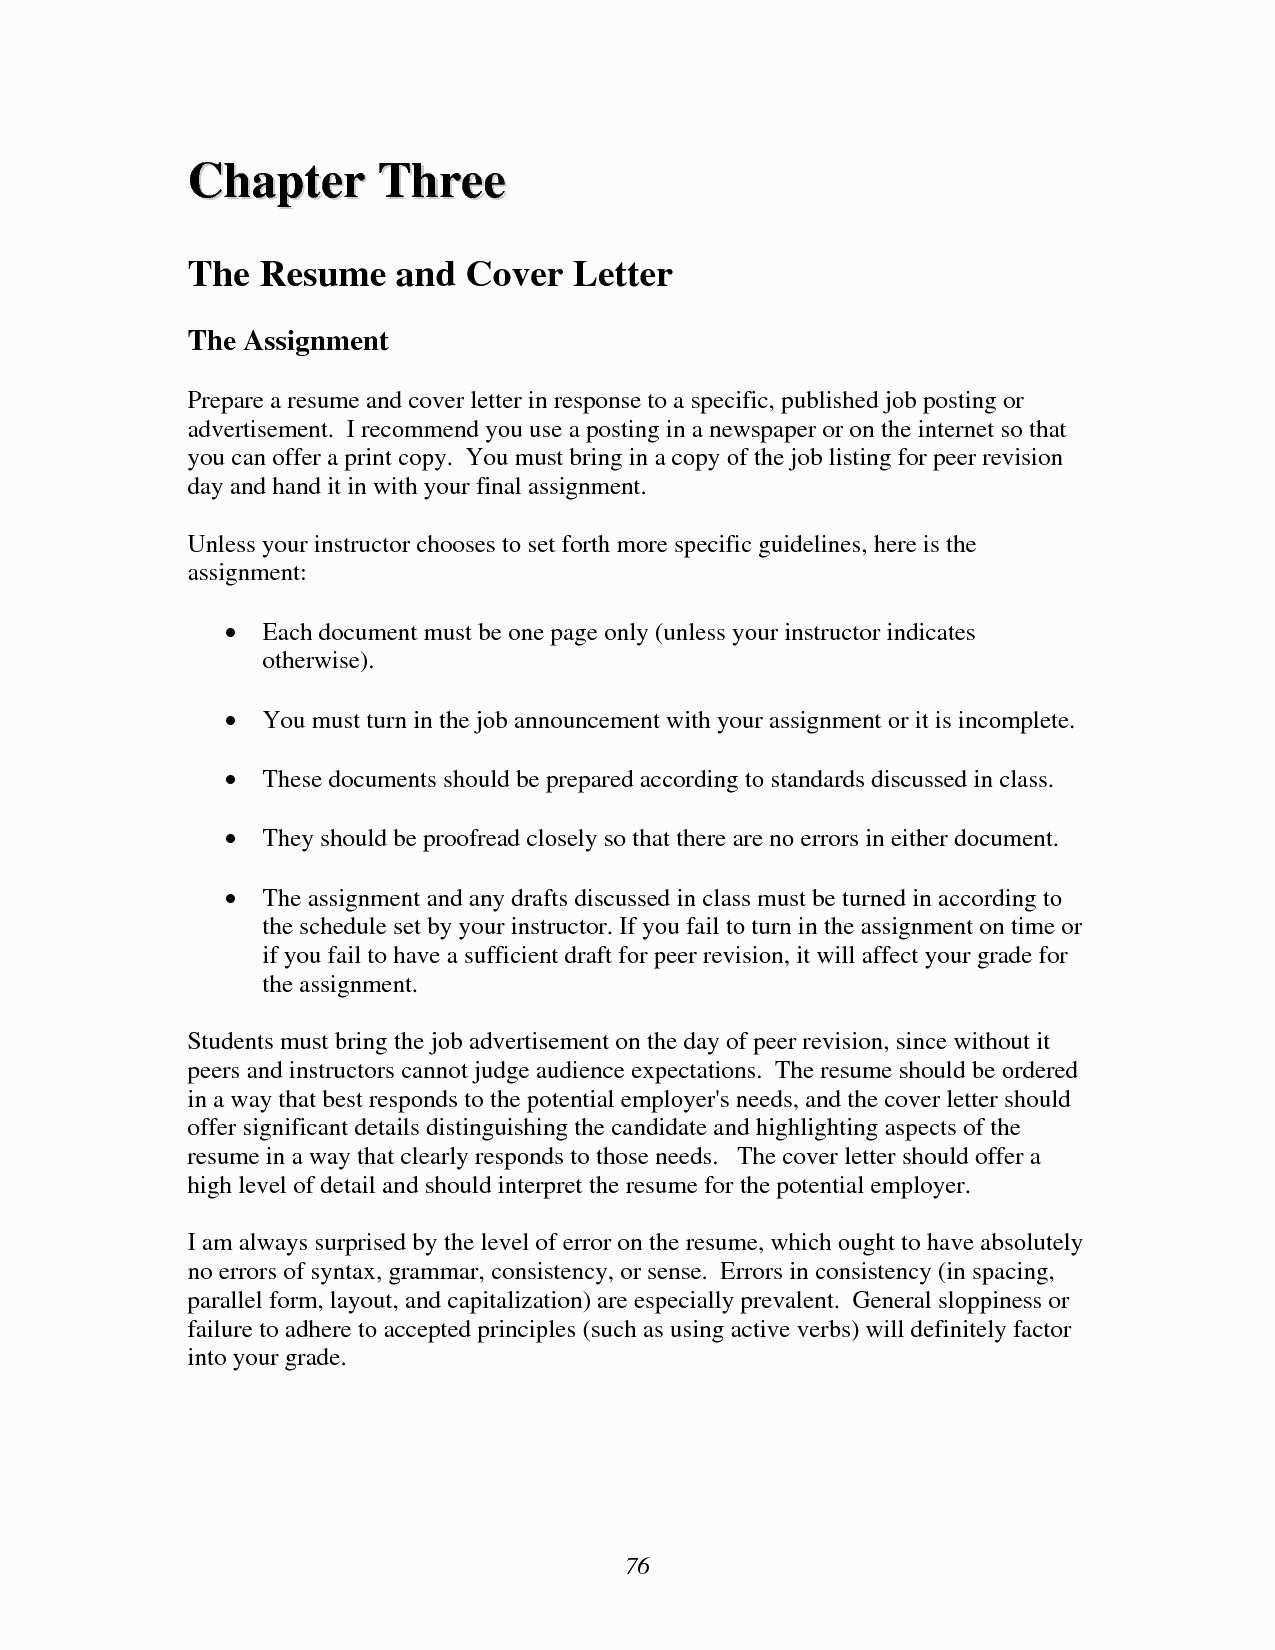 How to Write A Cover Letter Template - Employment Letter Example Fresh Job Fer Letter Template Us Copy Od